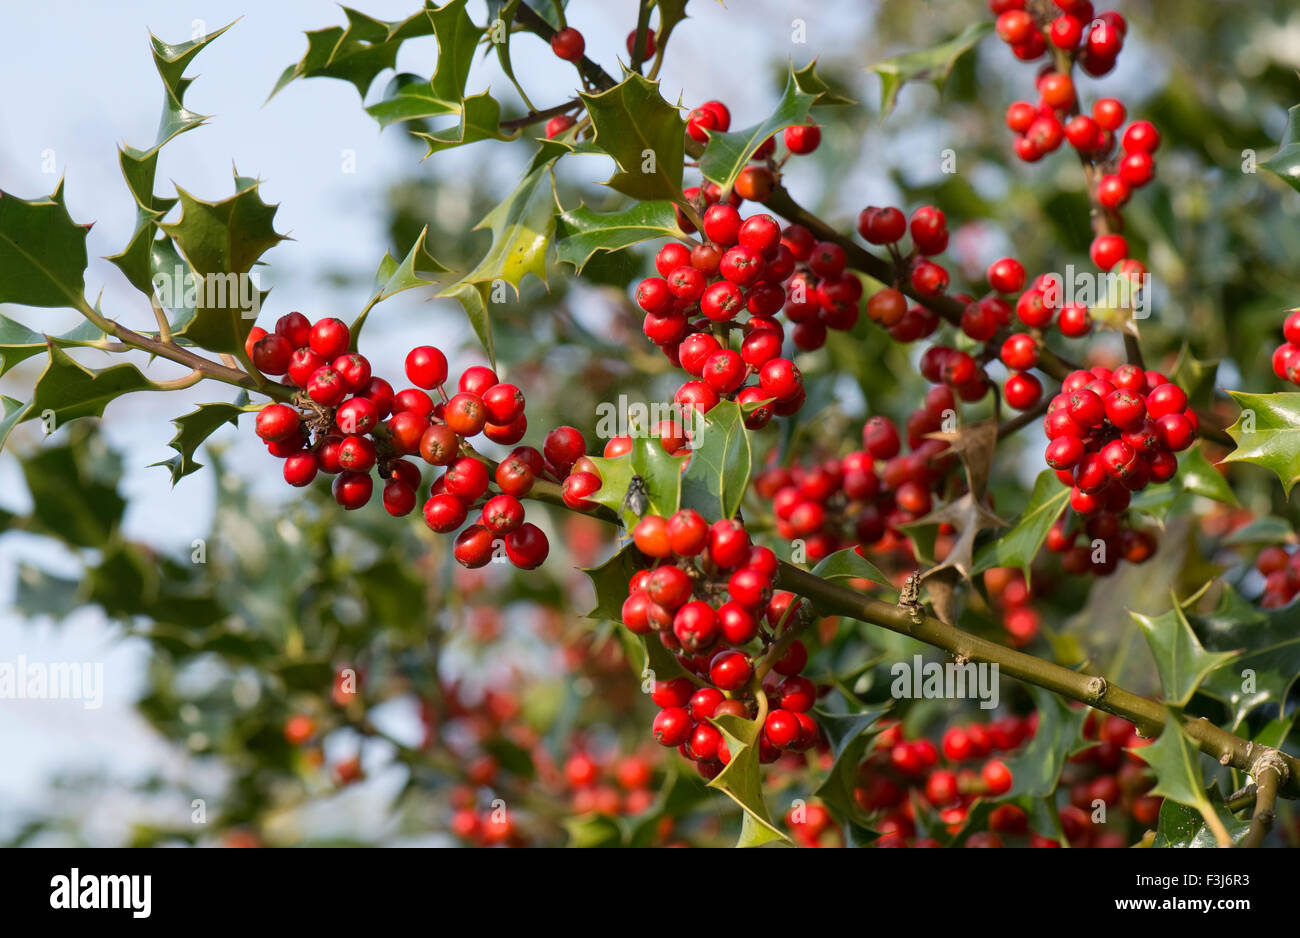 Holly, Ilex aquifolium, red berries and green leaves in early autumn, Berkshire, UK, October Stock Photo